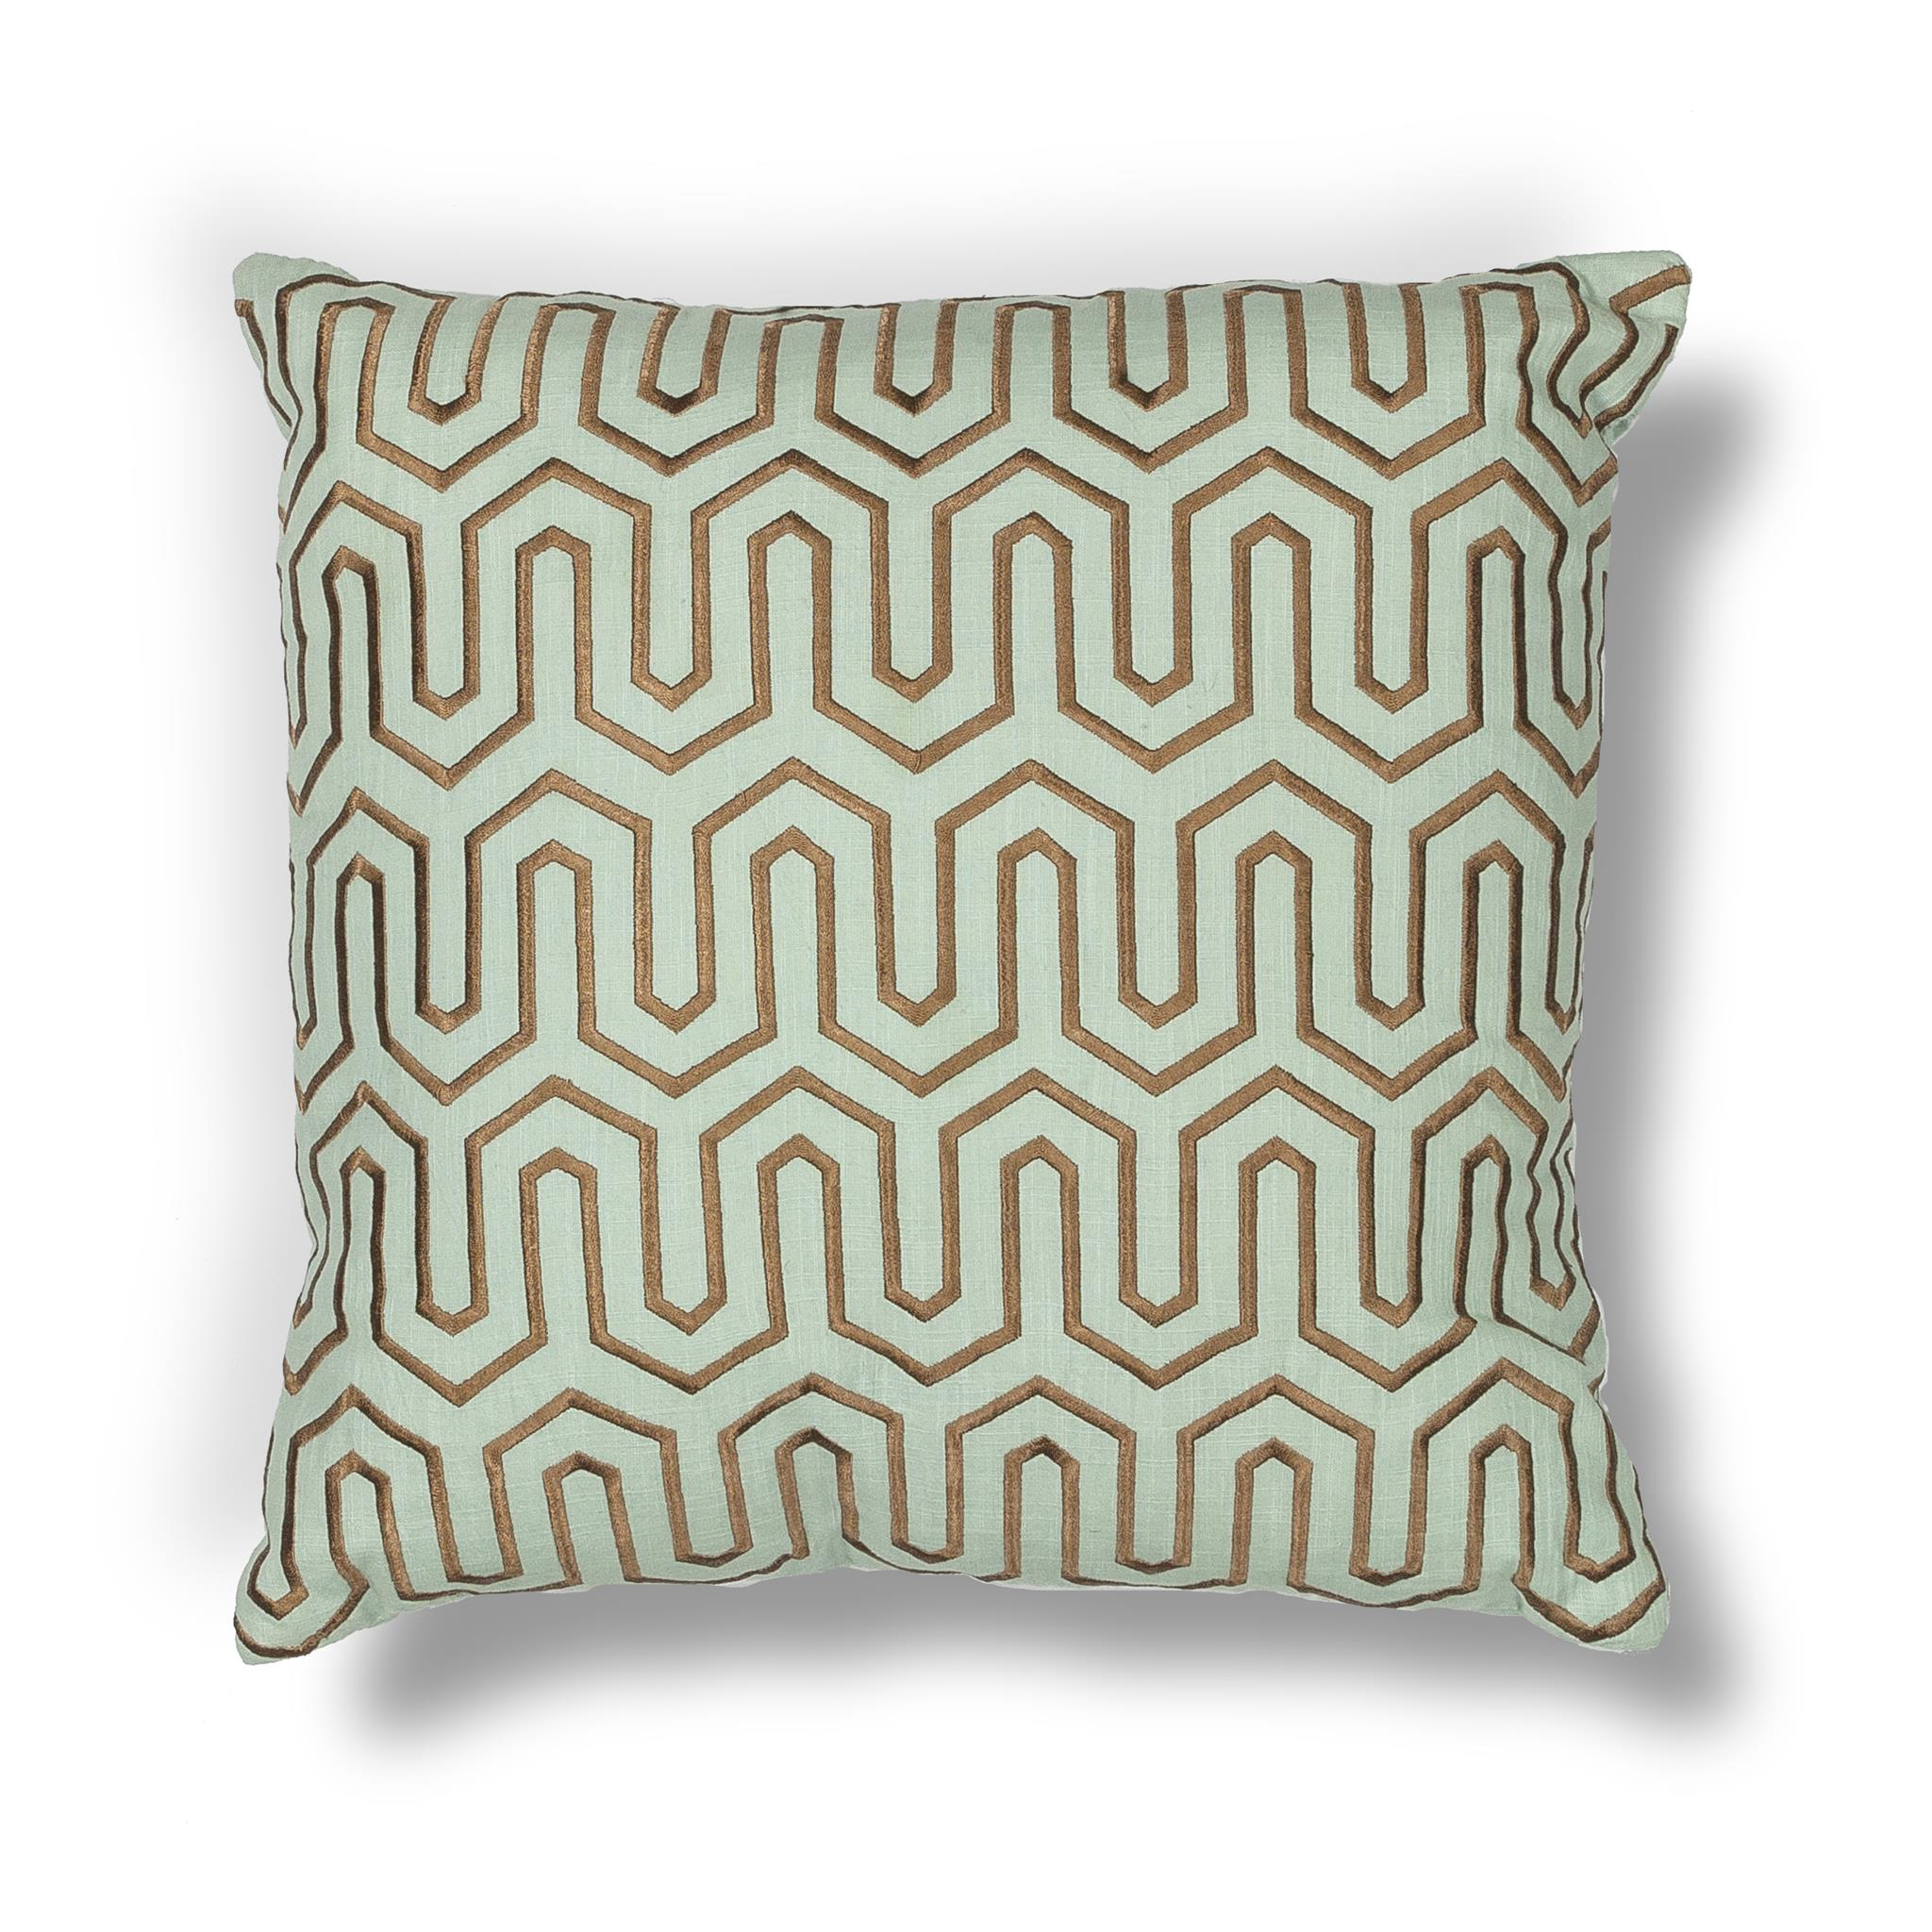 L201 Donny Osmond Home Seafoam-Chocolate Geo Pillow